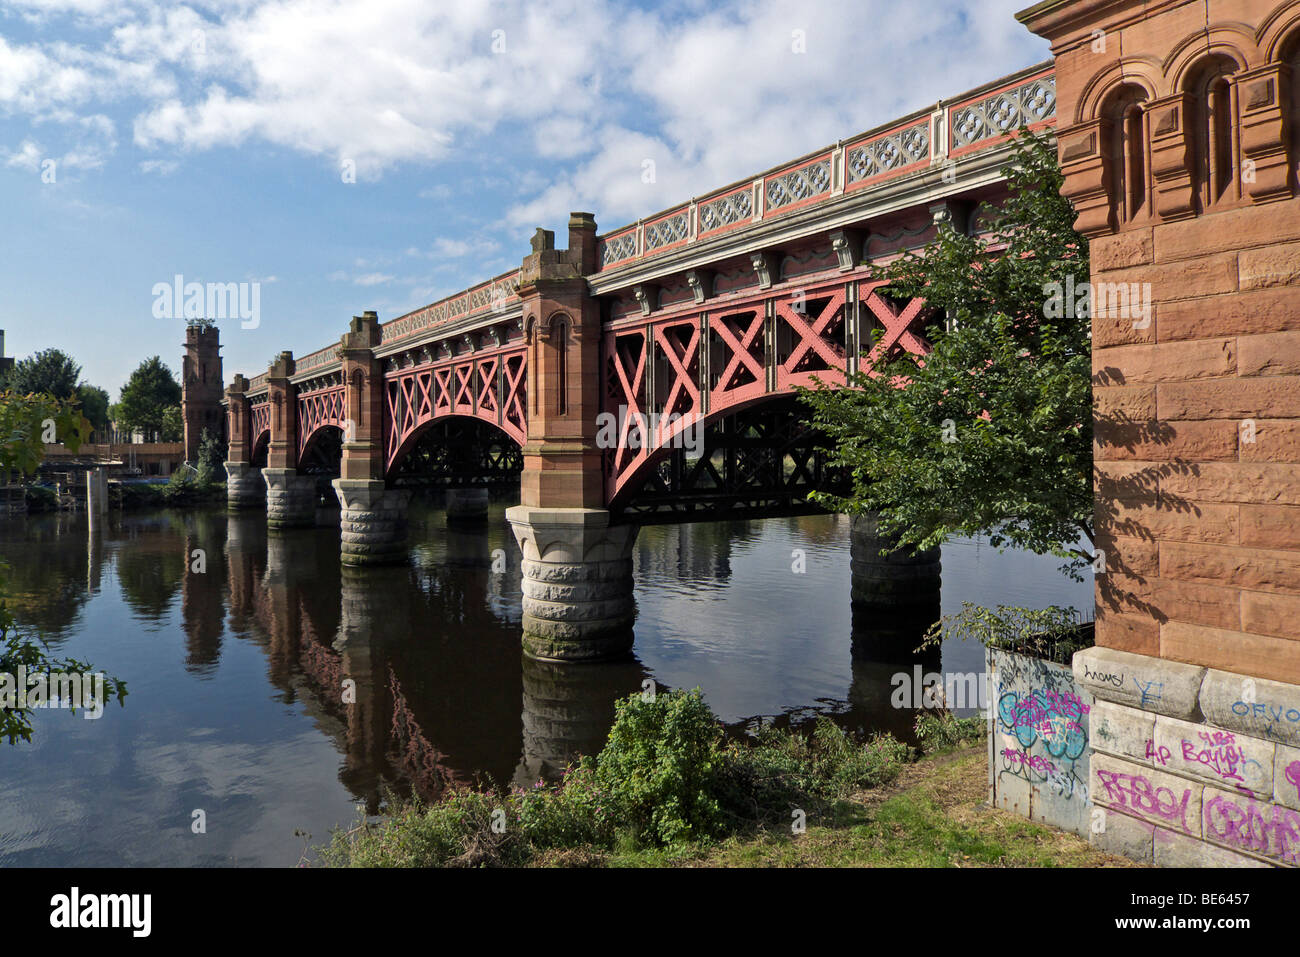 Railway bridge across River Clyde in central Glasgow Scotland seen from north-east. - Stock Image